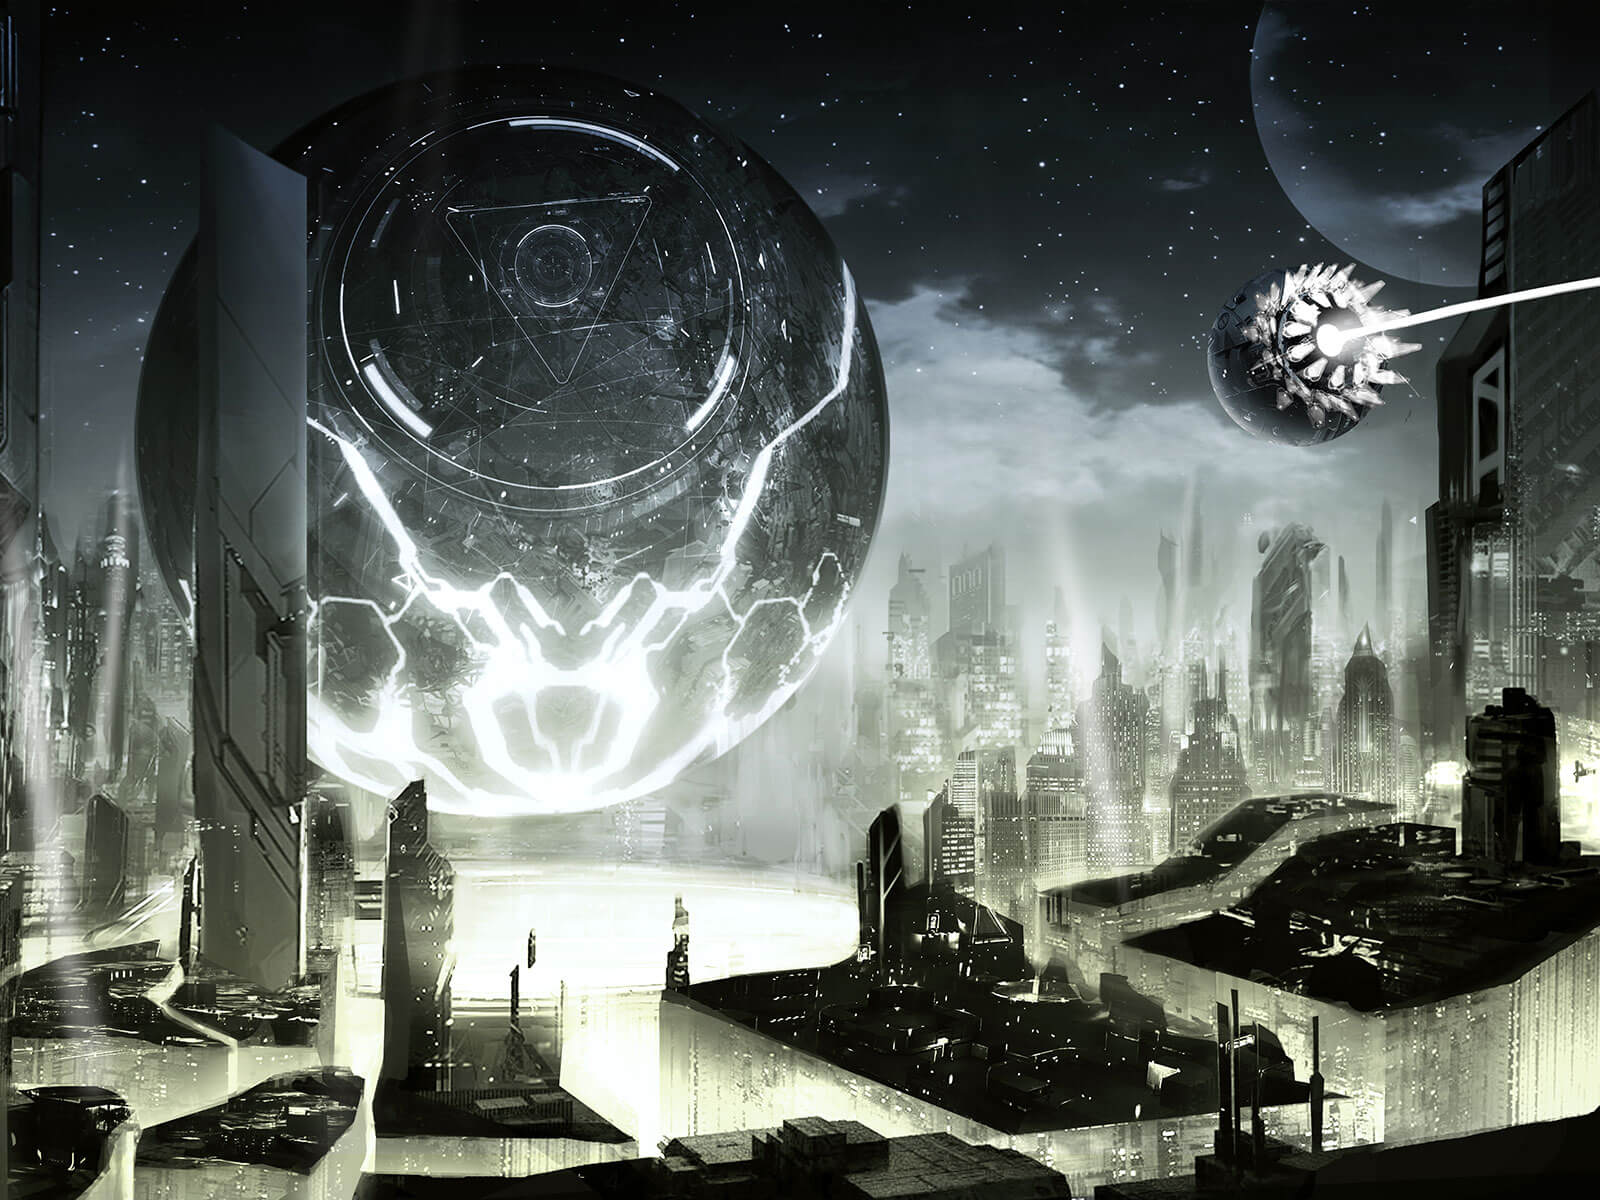 A futuristic cityscape built around a giant sphere hovering just above the ground.